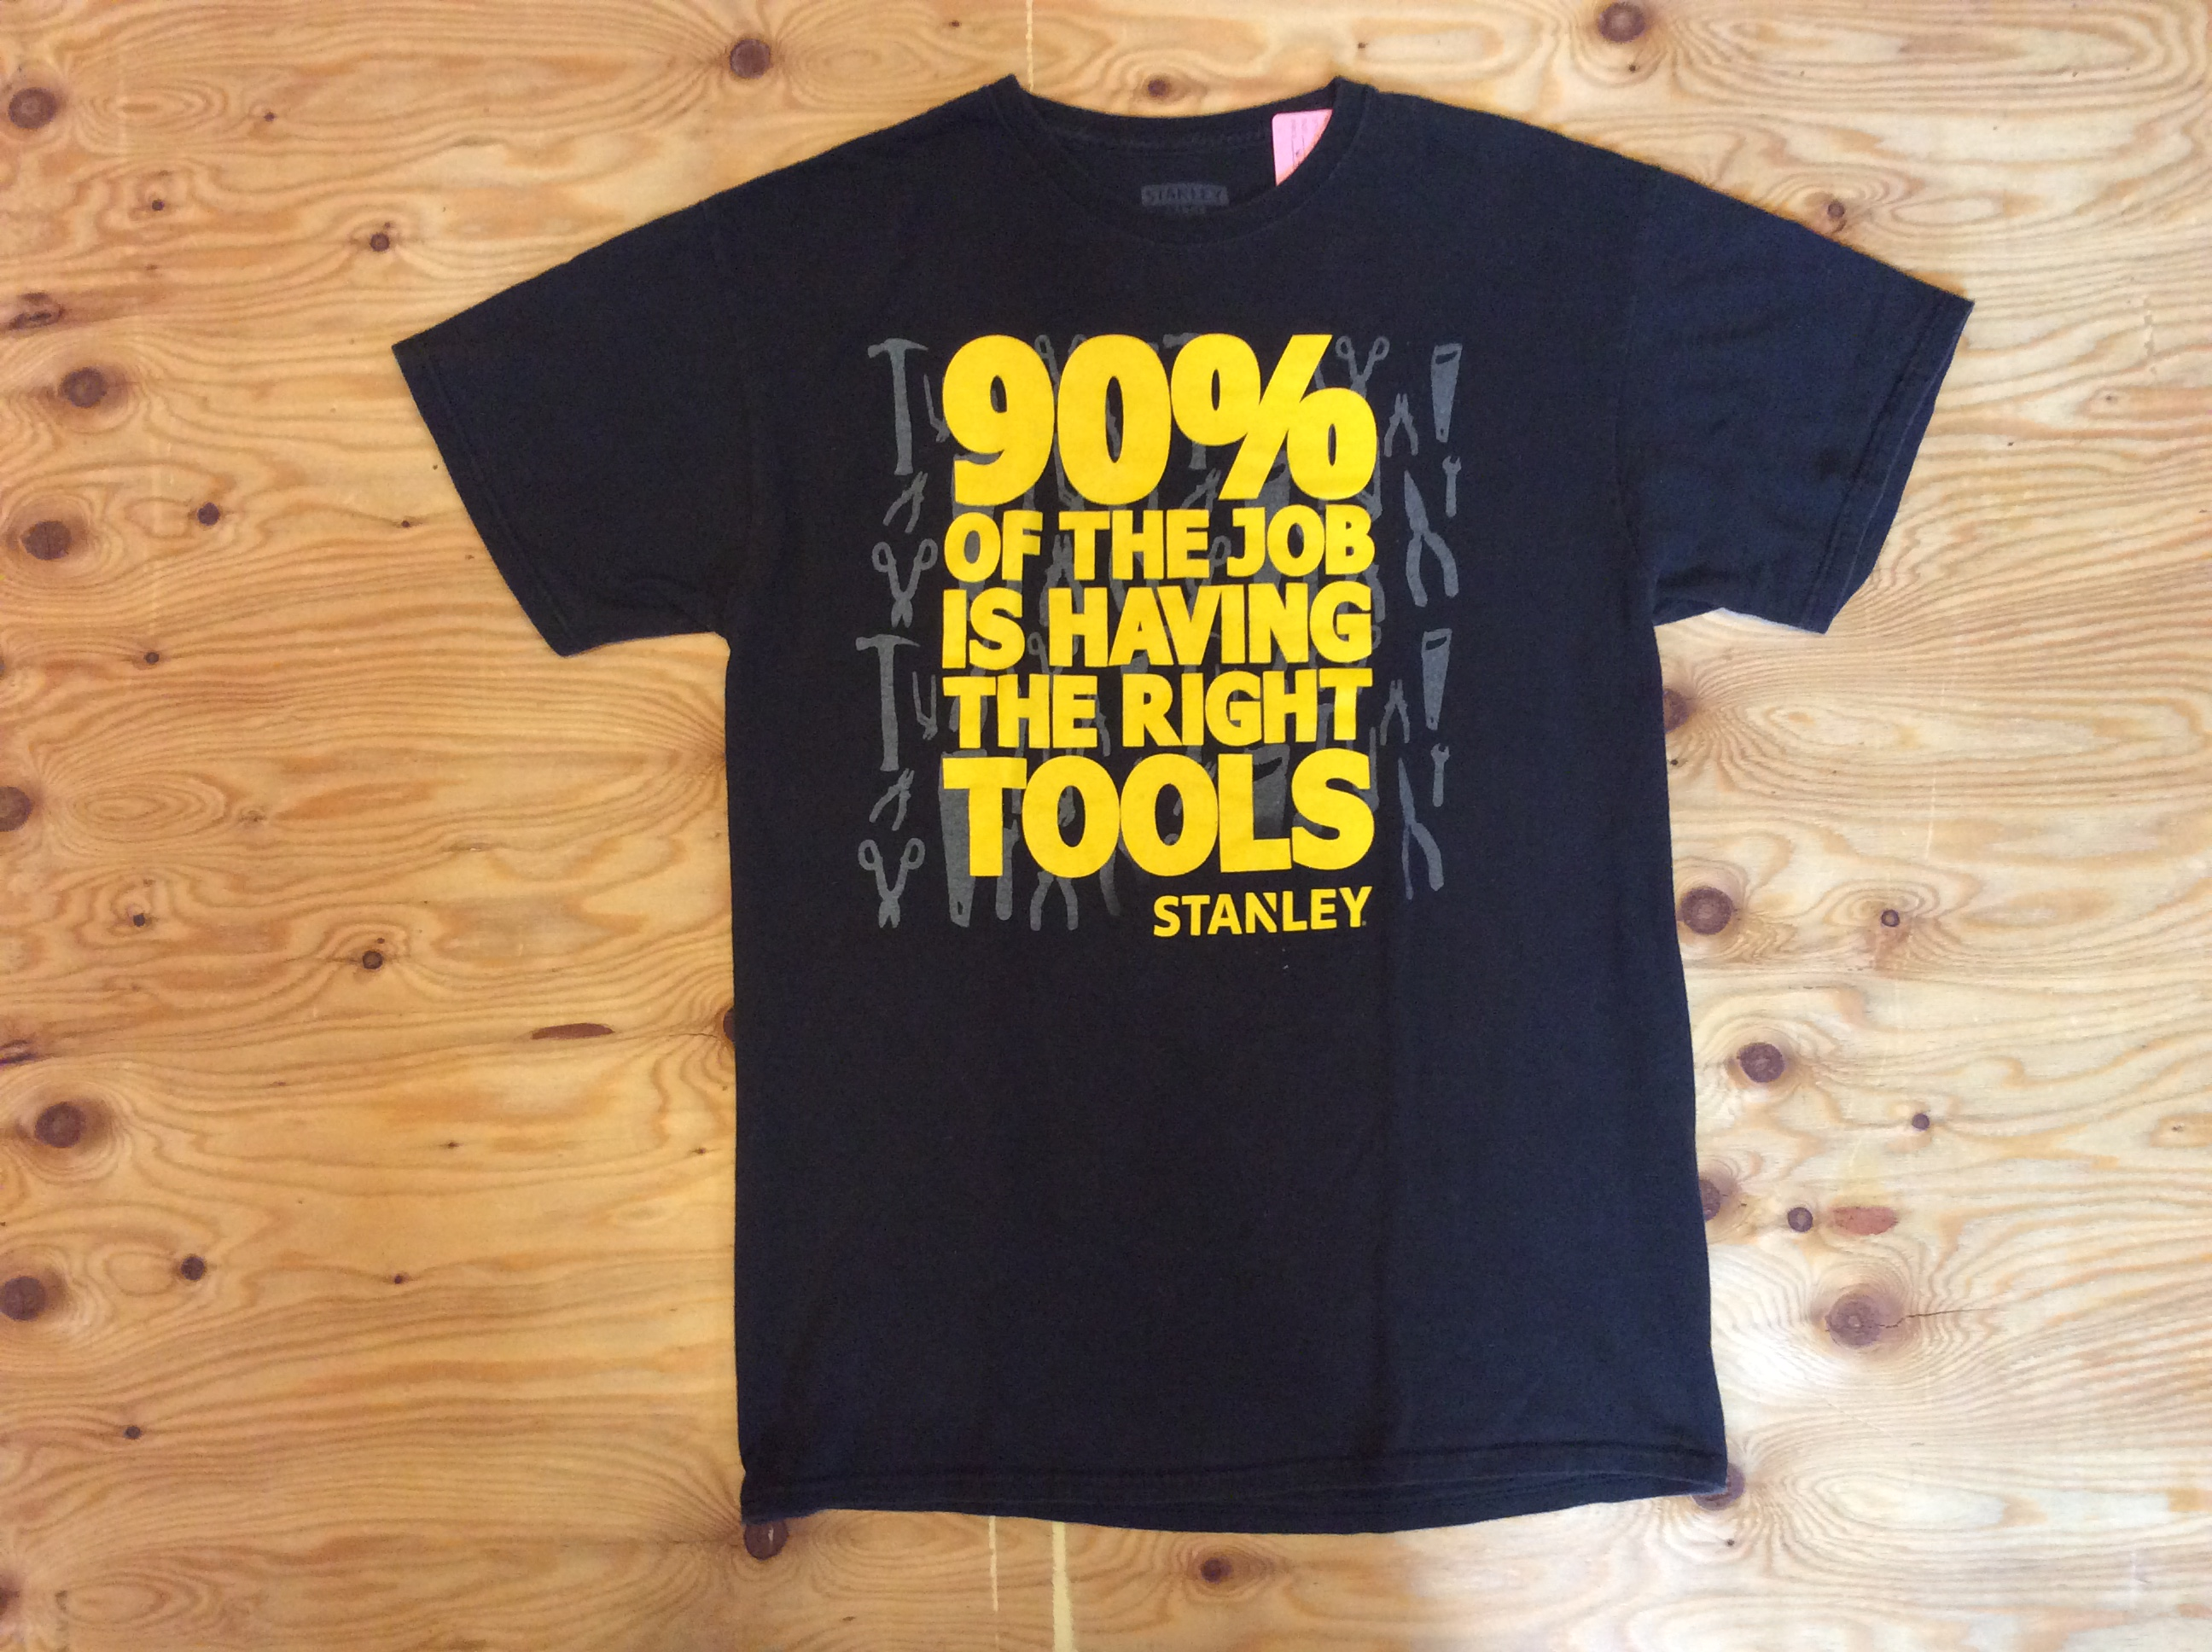 """STANLEY """"90% OF THE JOB IS HAVING THE RIGHT TOOLS """" T-SHIRT / L /USED"""